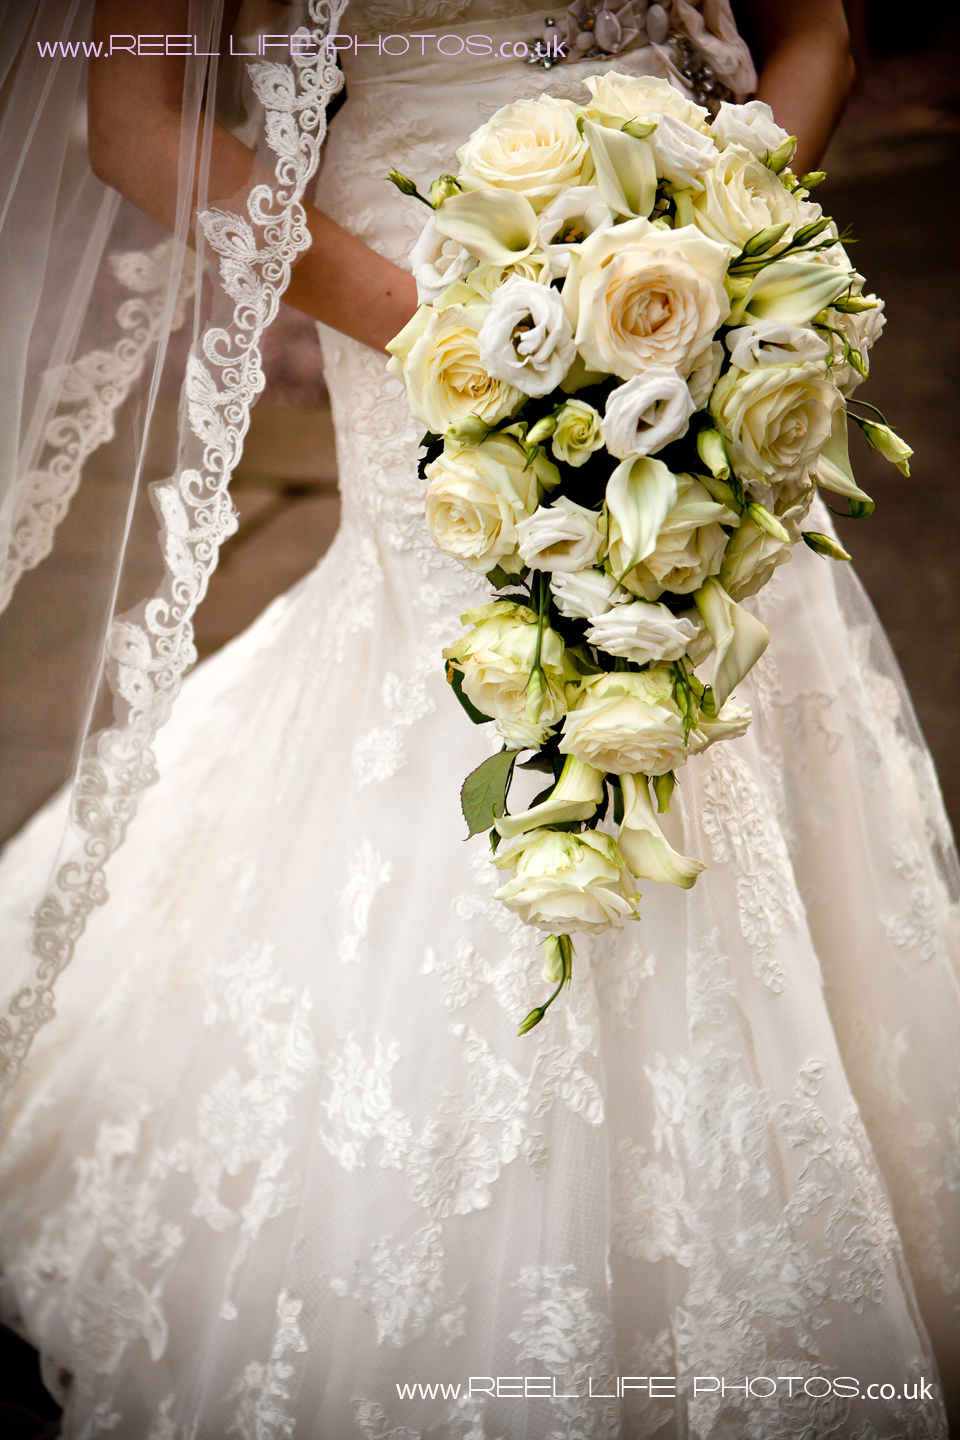 white wedding dress with lace and bouquet of yellow roses